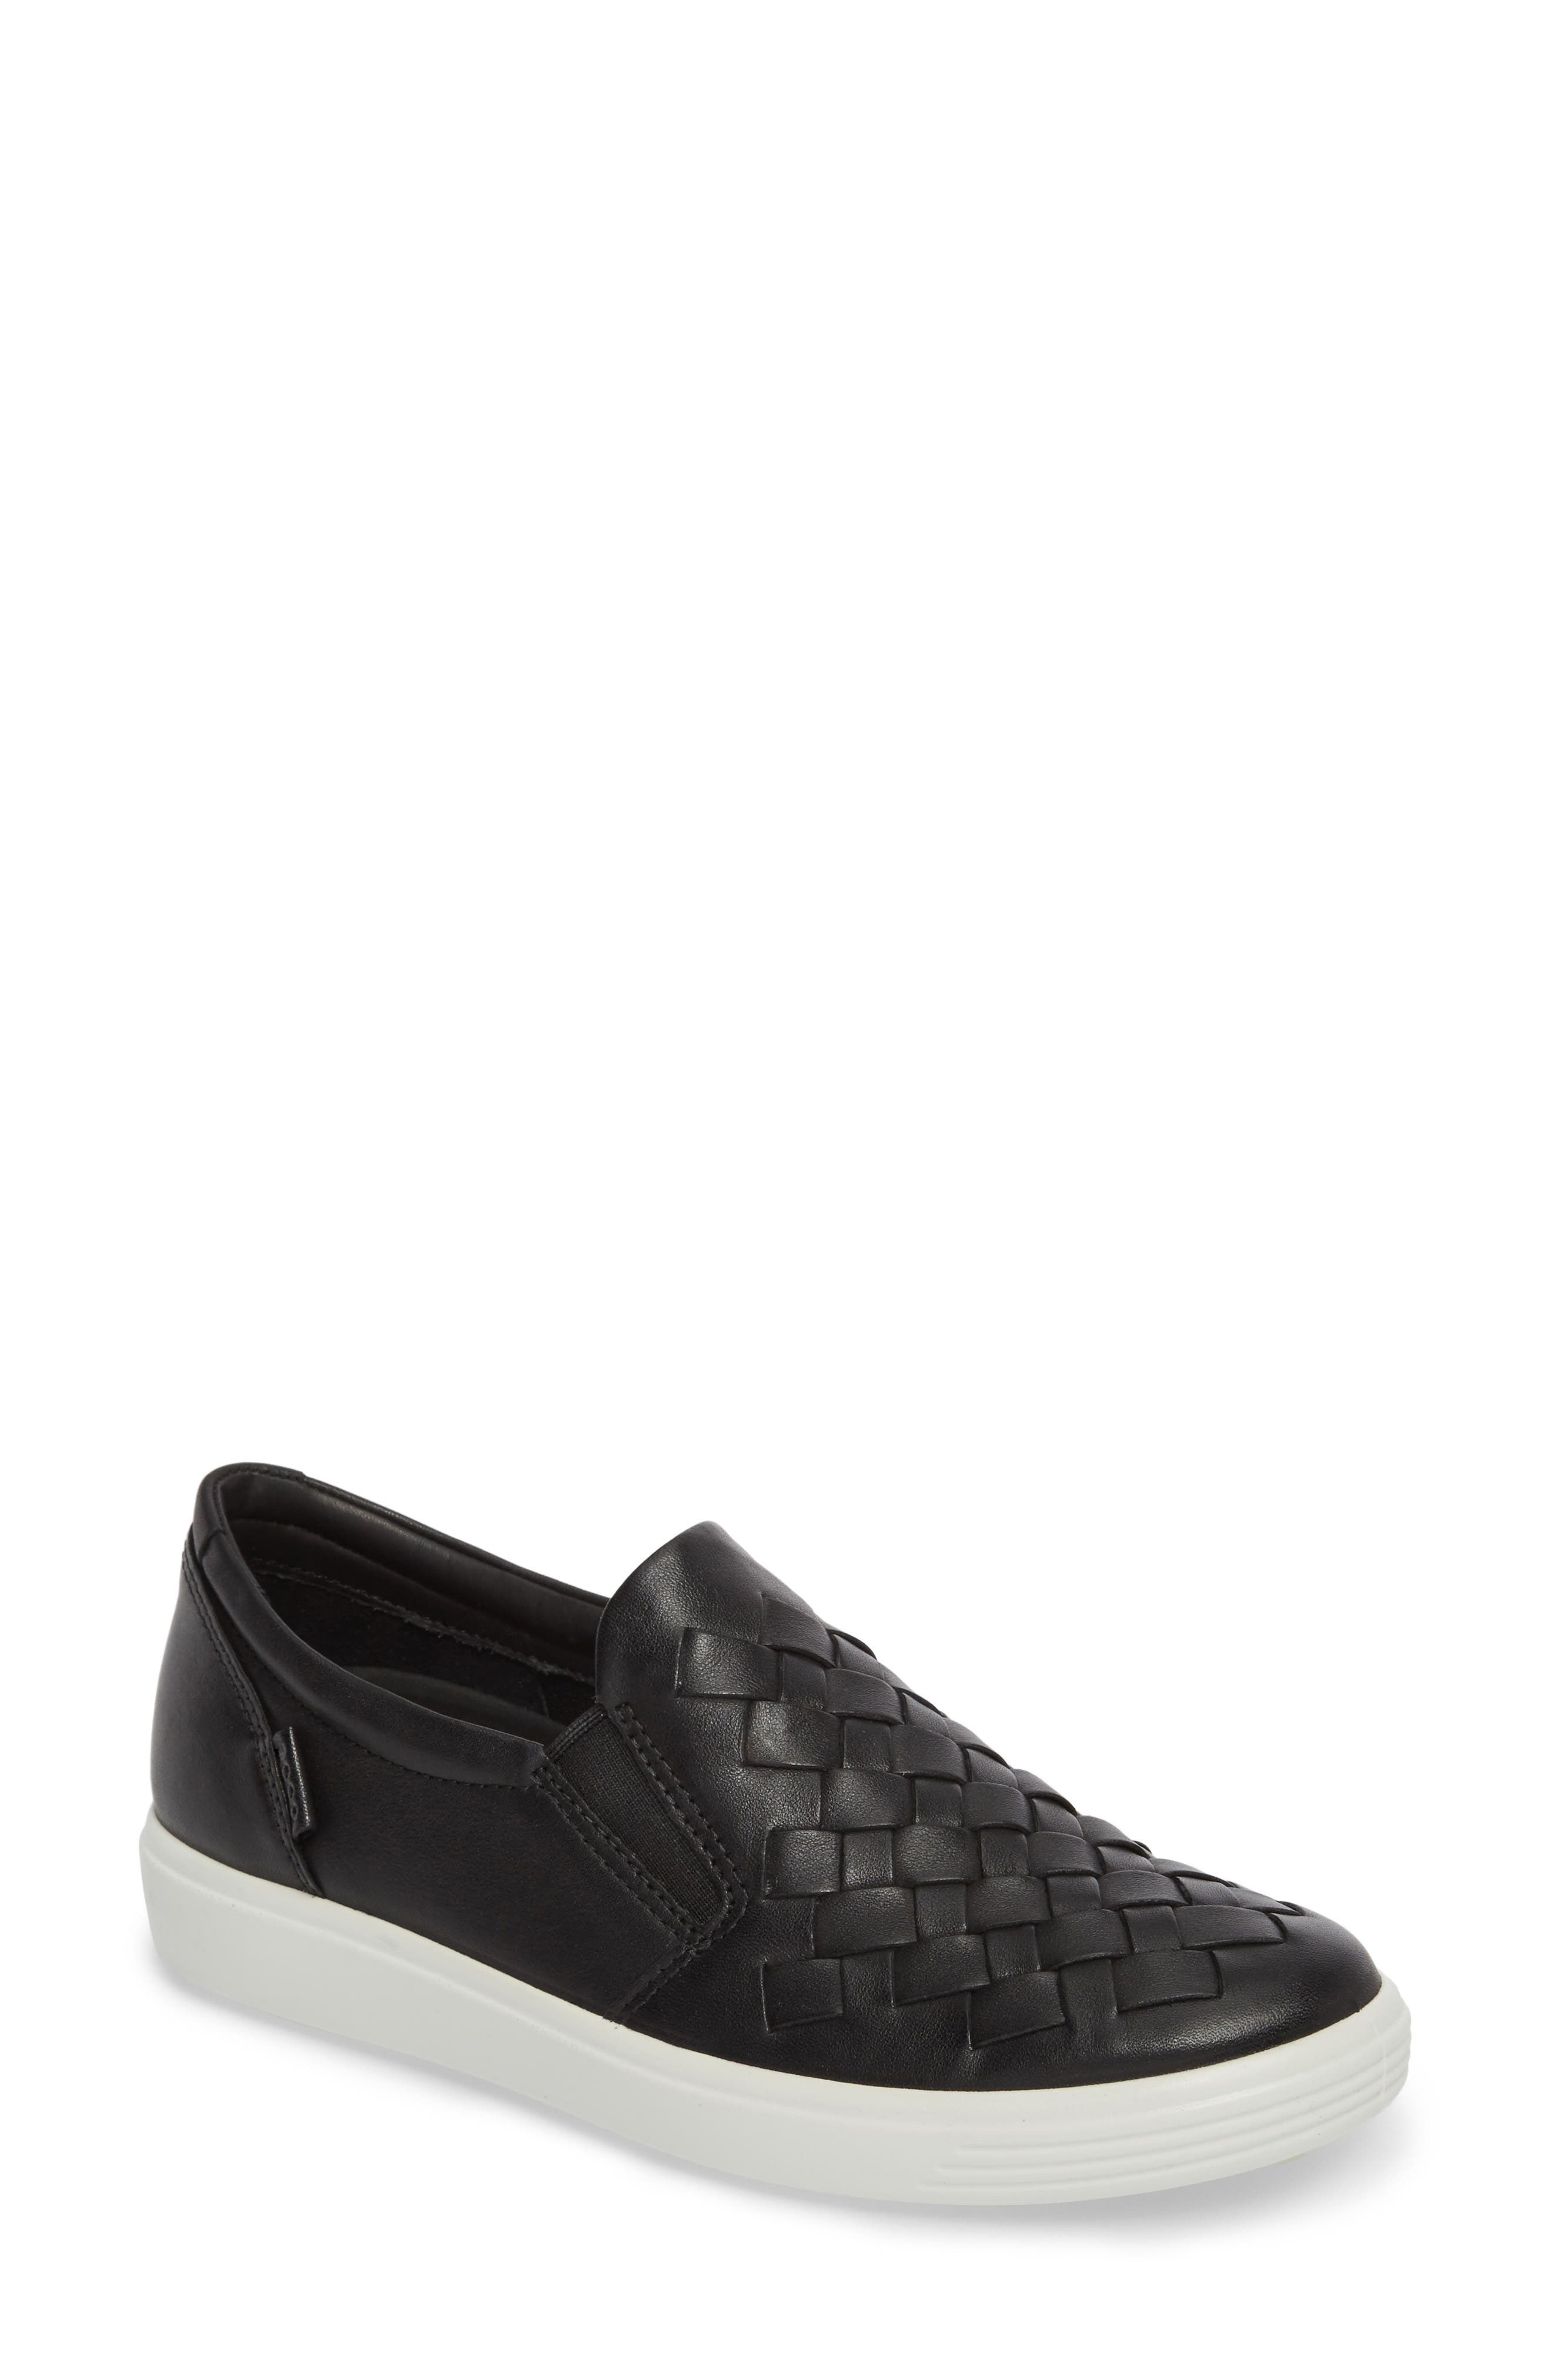 ECO Soft 7 Woven Slip-On Sneaker,                             Main thumbnail 1, color,                             BLACK LEATHER